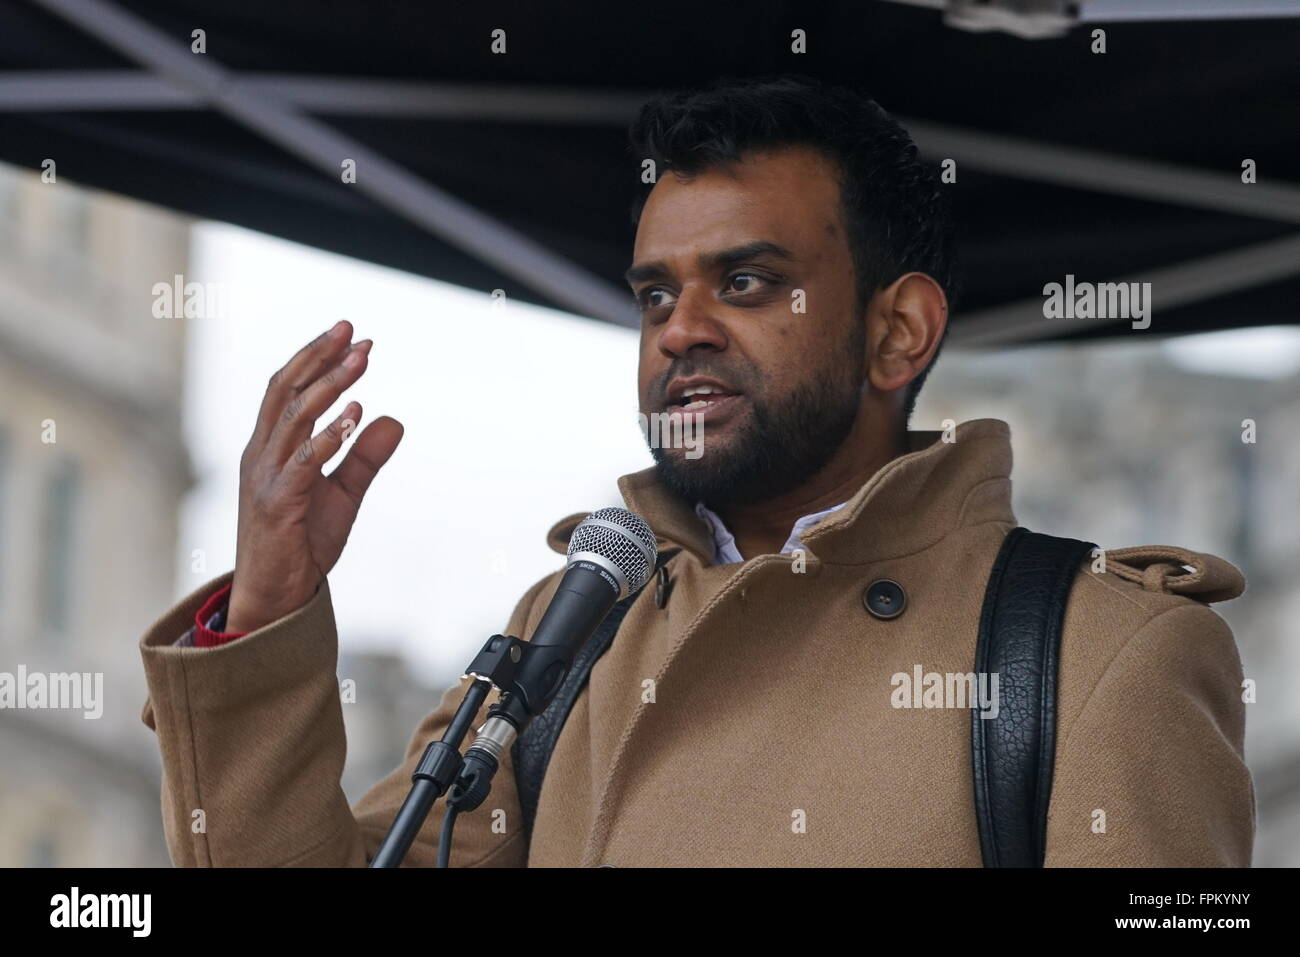 London, UK. 19th March, 2016. Shamiul Joarder of Friends of Al Aqsa addresses at the rally at the National demo - Stock Image